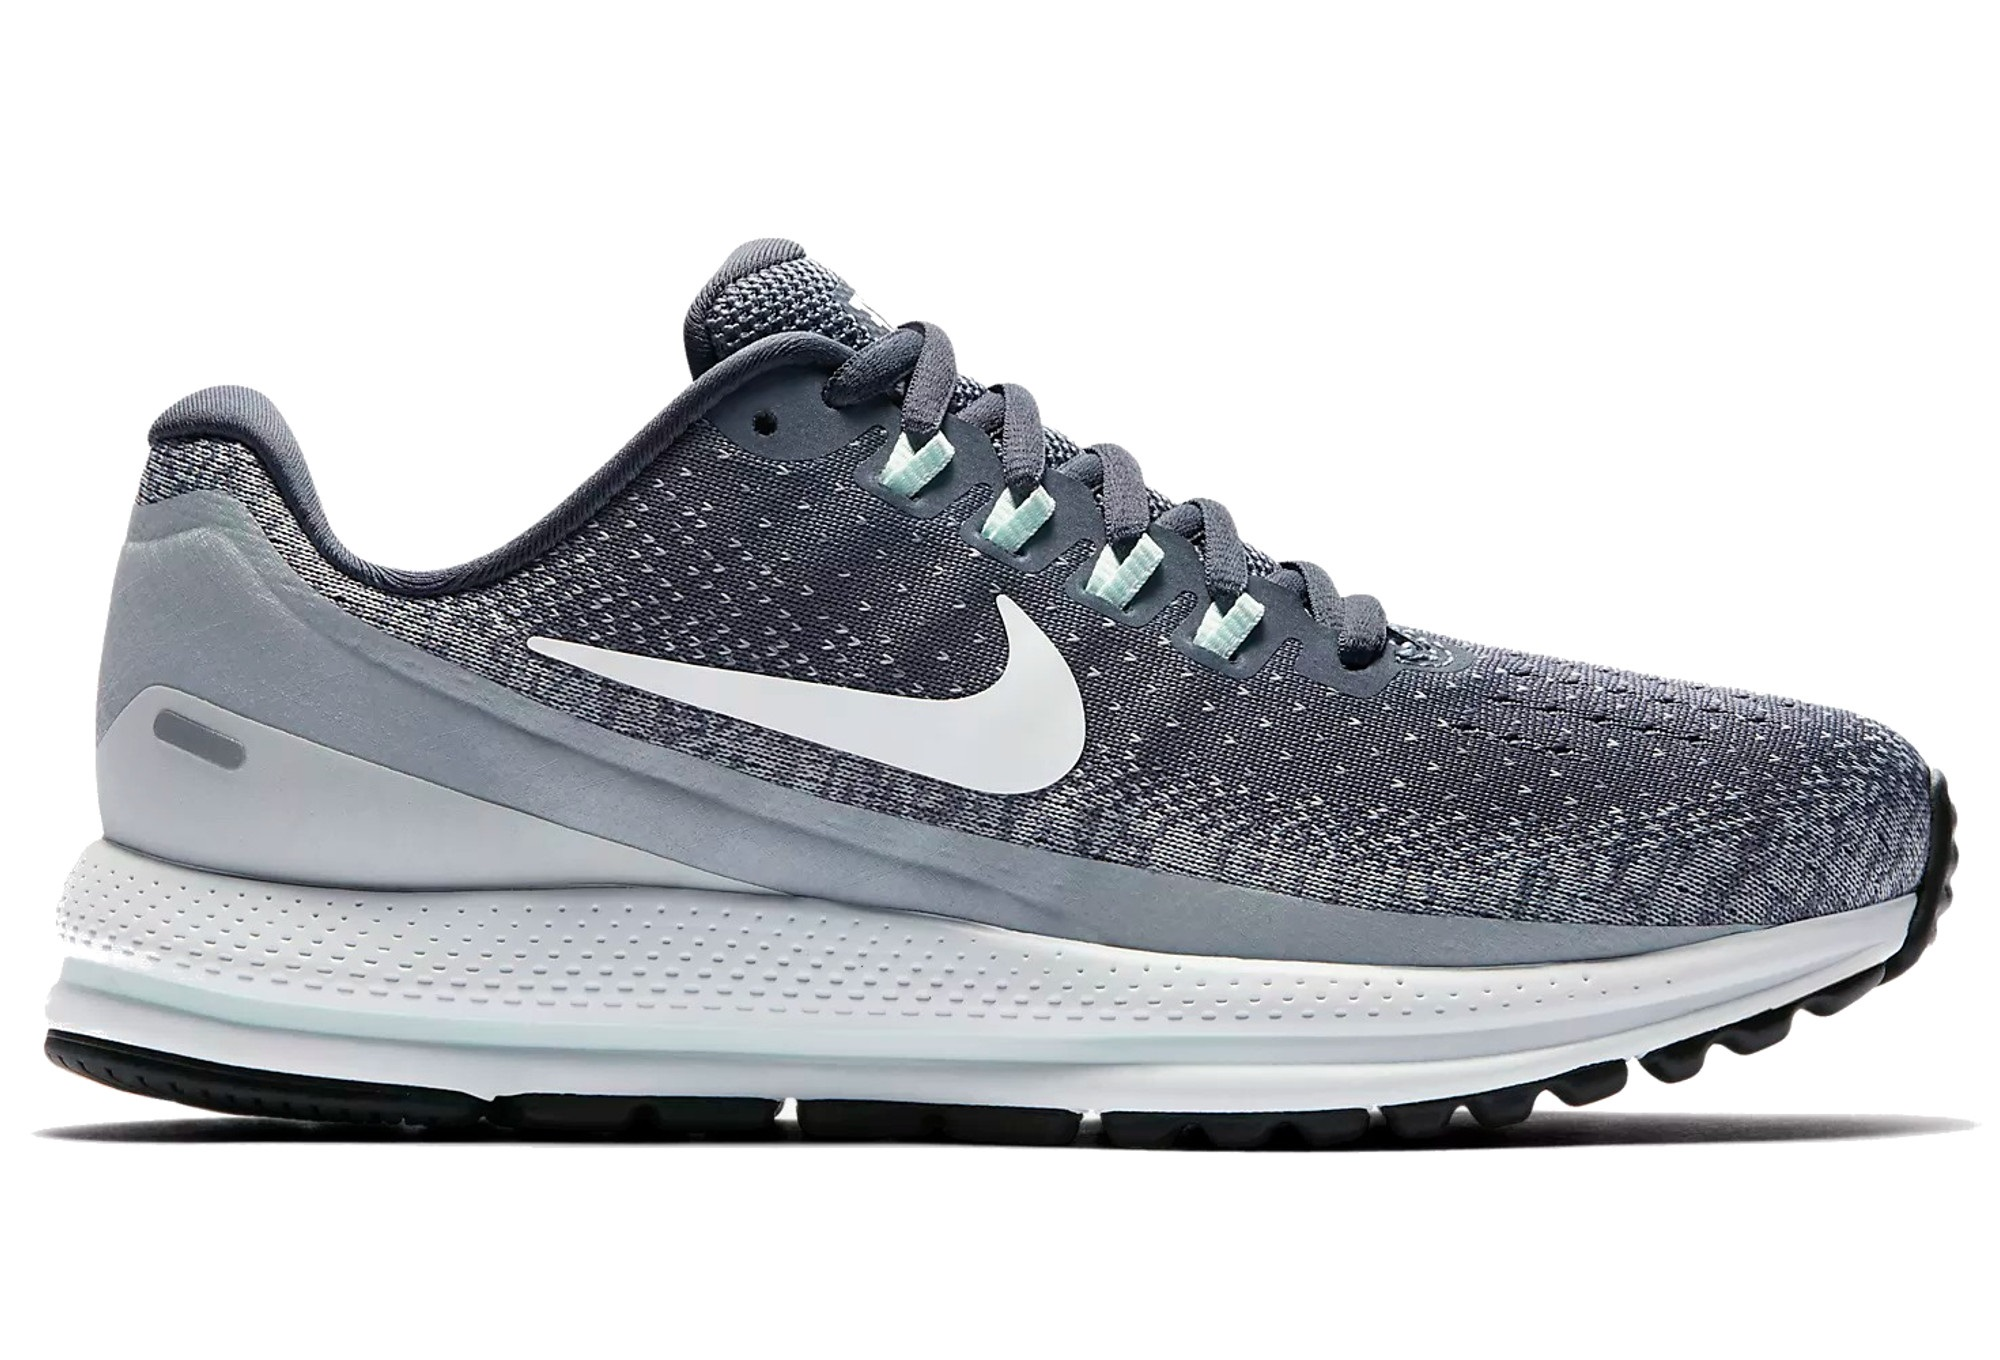 new product 23f31 dddfe Chaussures de Running Femme Nike Air Zoom Vomero 13 Gris   Blanc